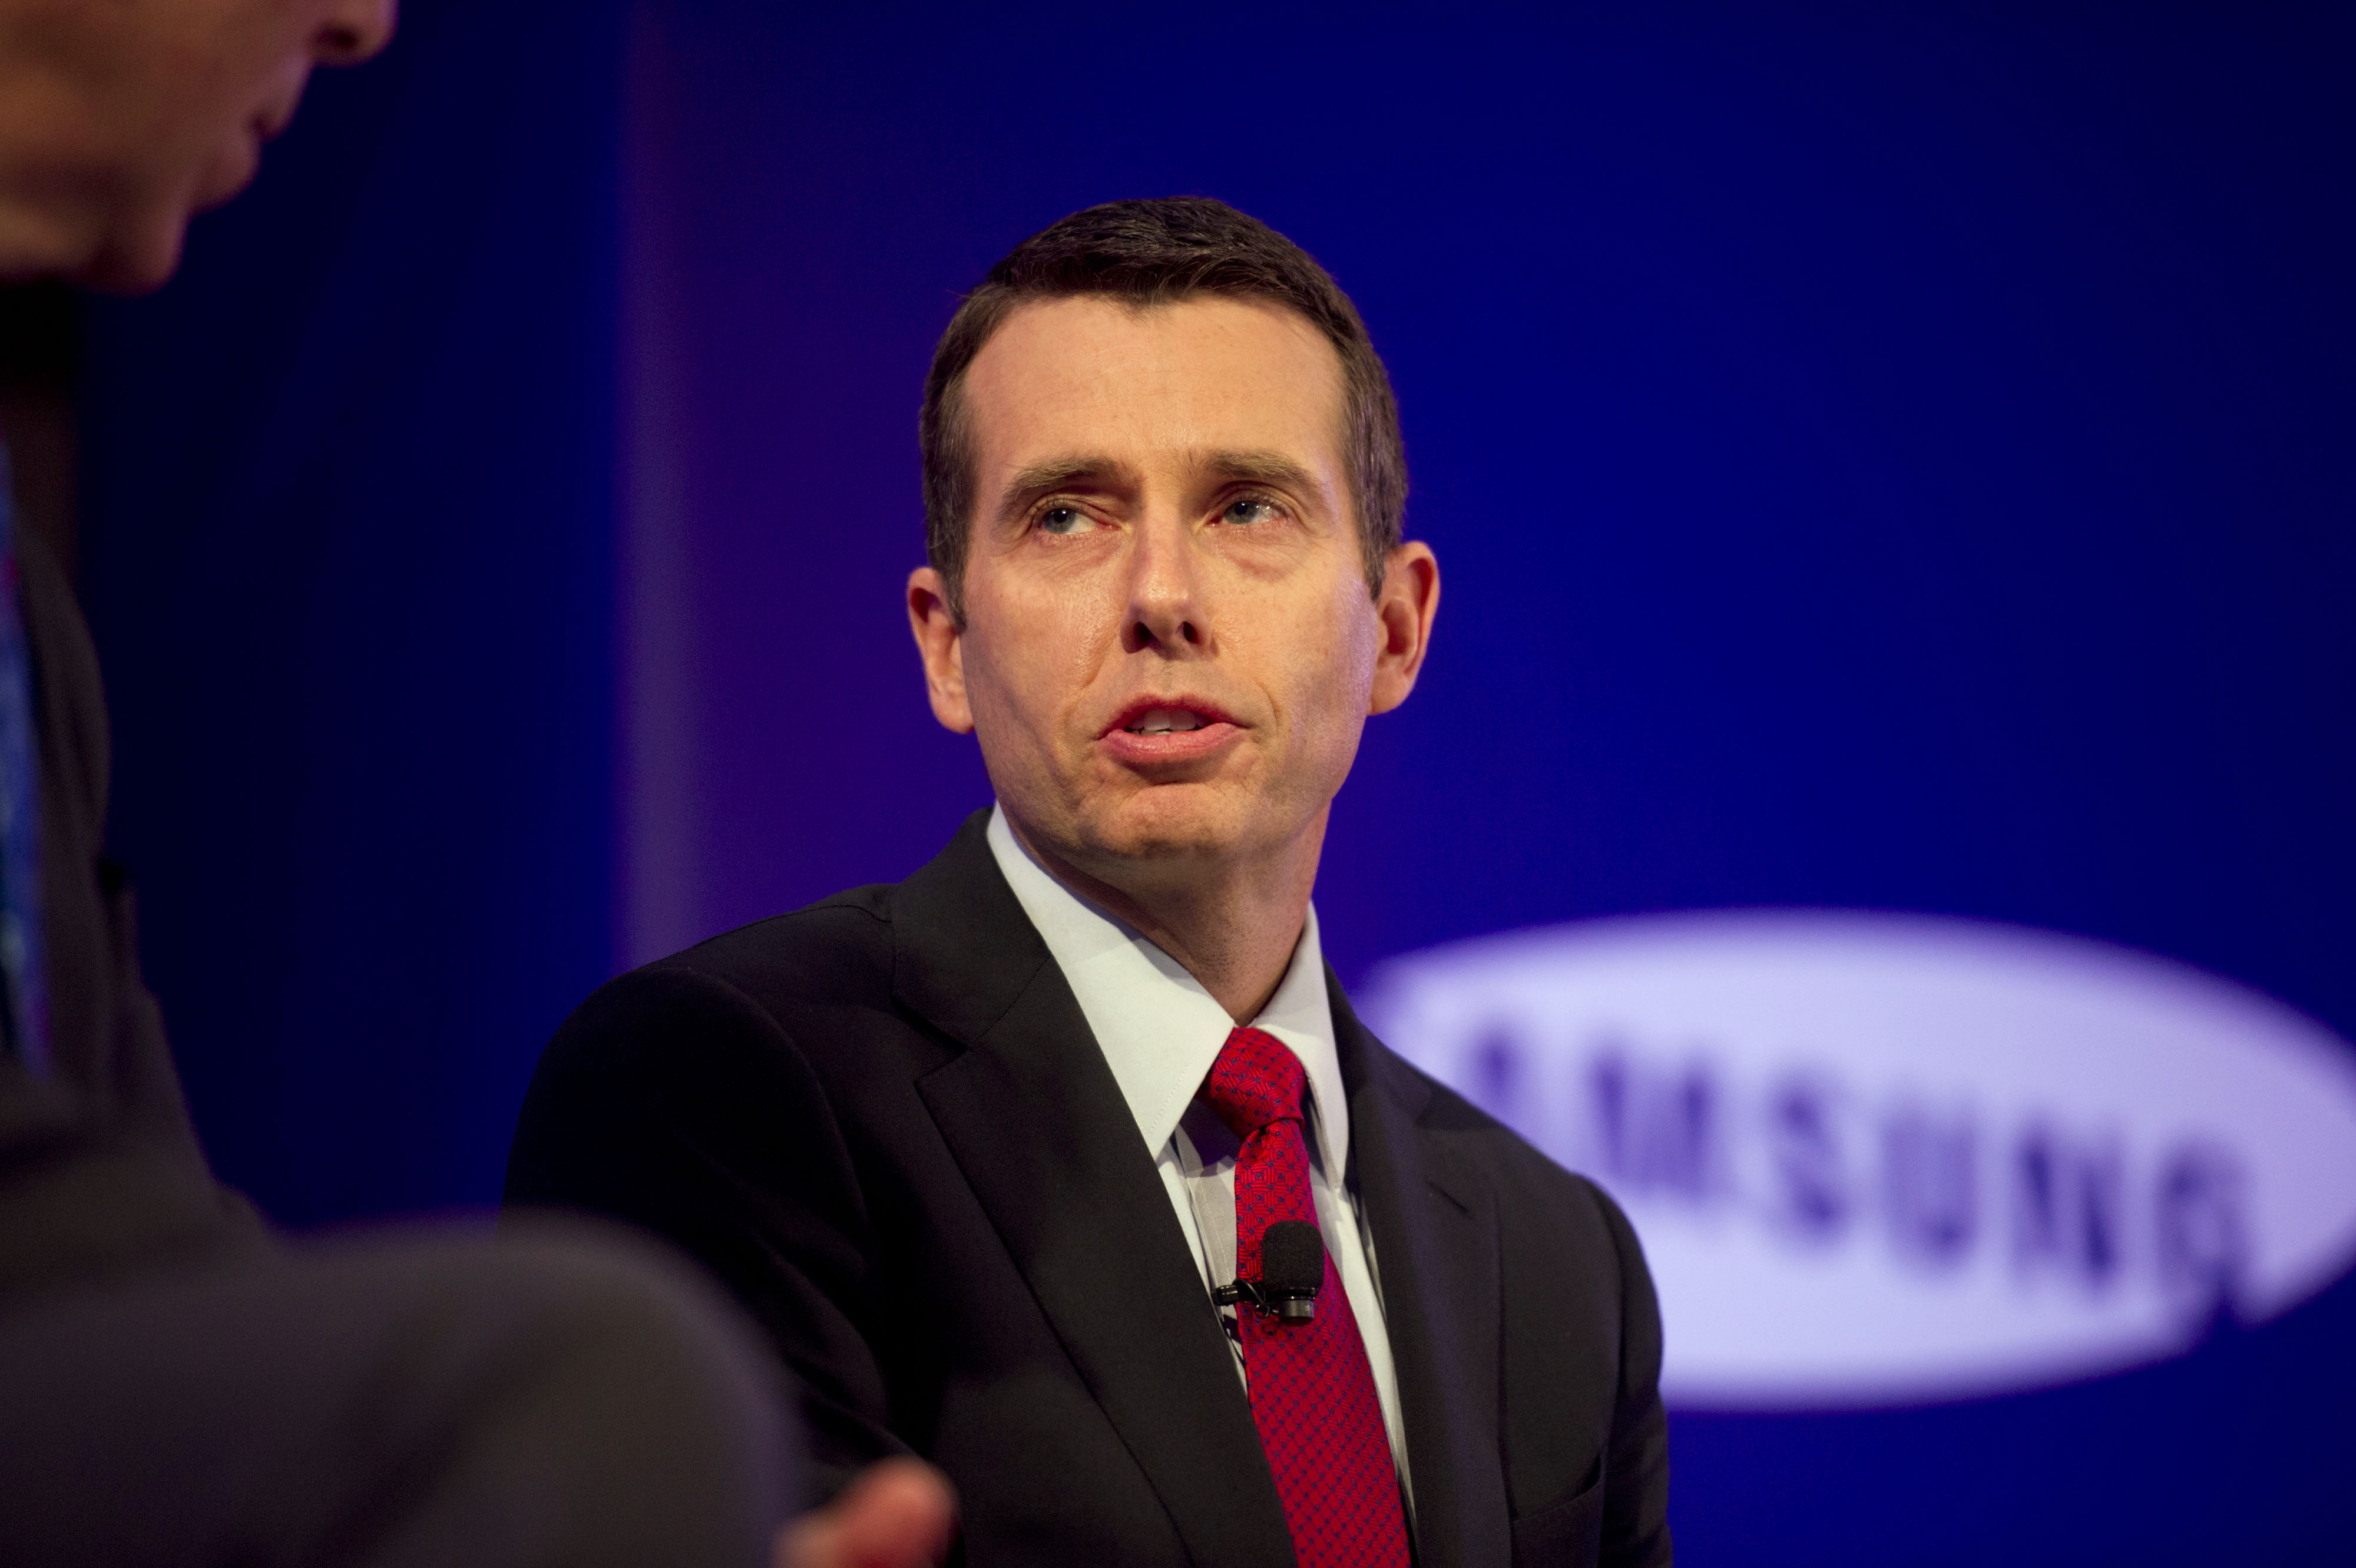 David Plouffe, former senior adviser to U.S. President Barack Obama and Bloomberg News analyst, speaks at the Bloomberg Year Ahead: 2014 conference in Chicago, Illinois, U.S., on Nov. 20, 2013.